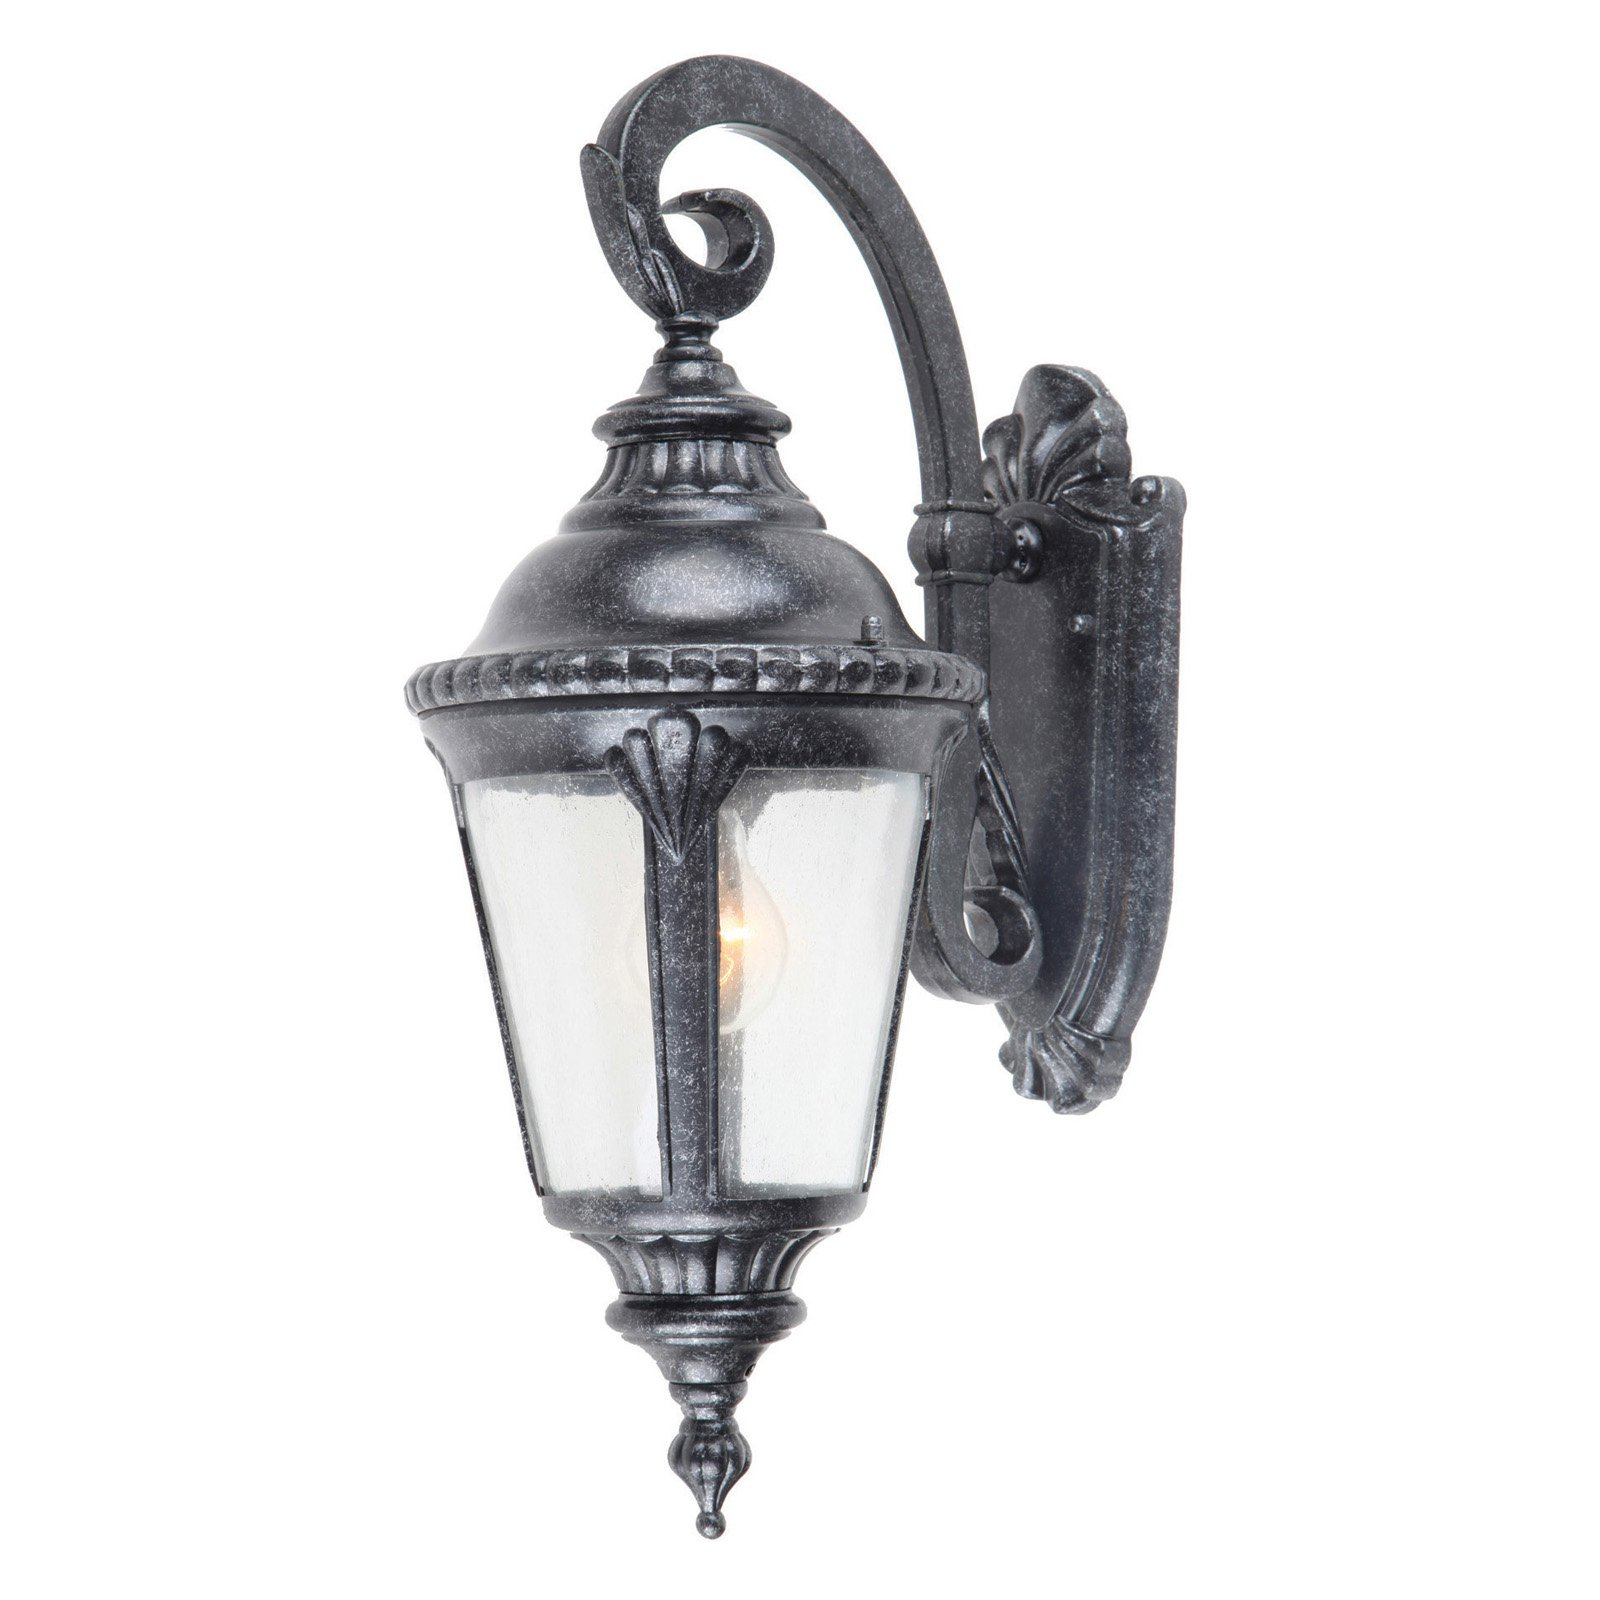 Yosemite Home Decor Columbus 7201ST-1 Outdoor Wall Sconce